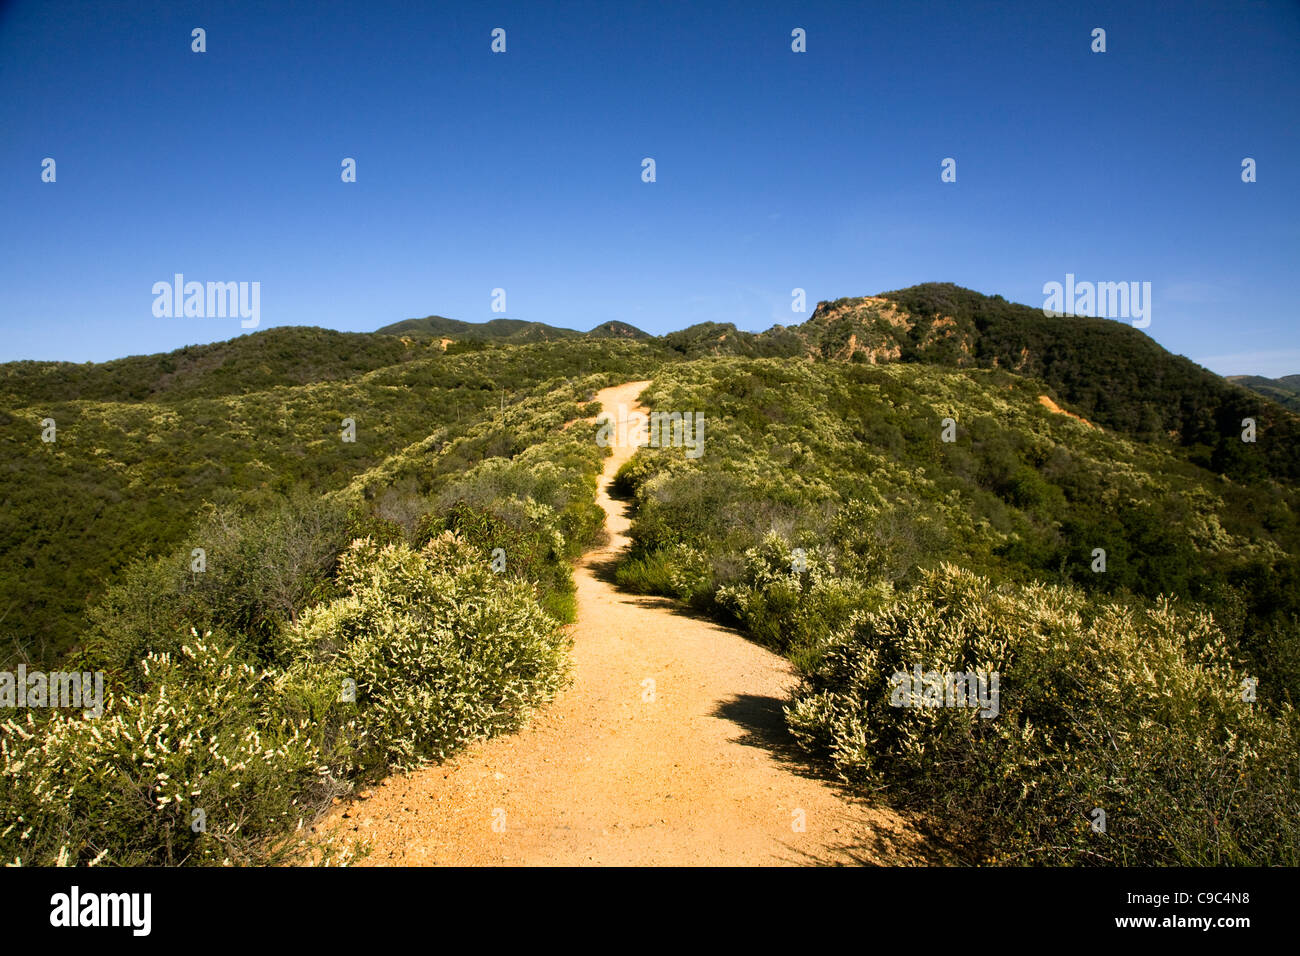 CALIFORNIA - The Backbone trail traversing chaparral covered hillsides above its terminus at Will Rogers State Historic - Stock Image